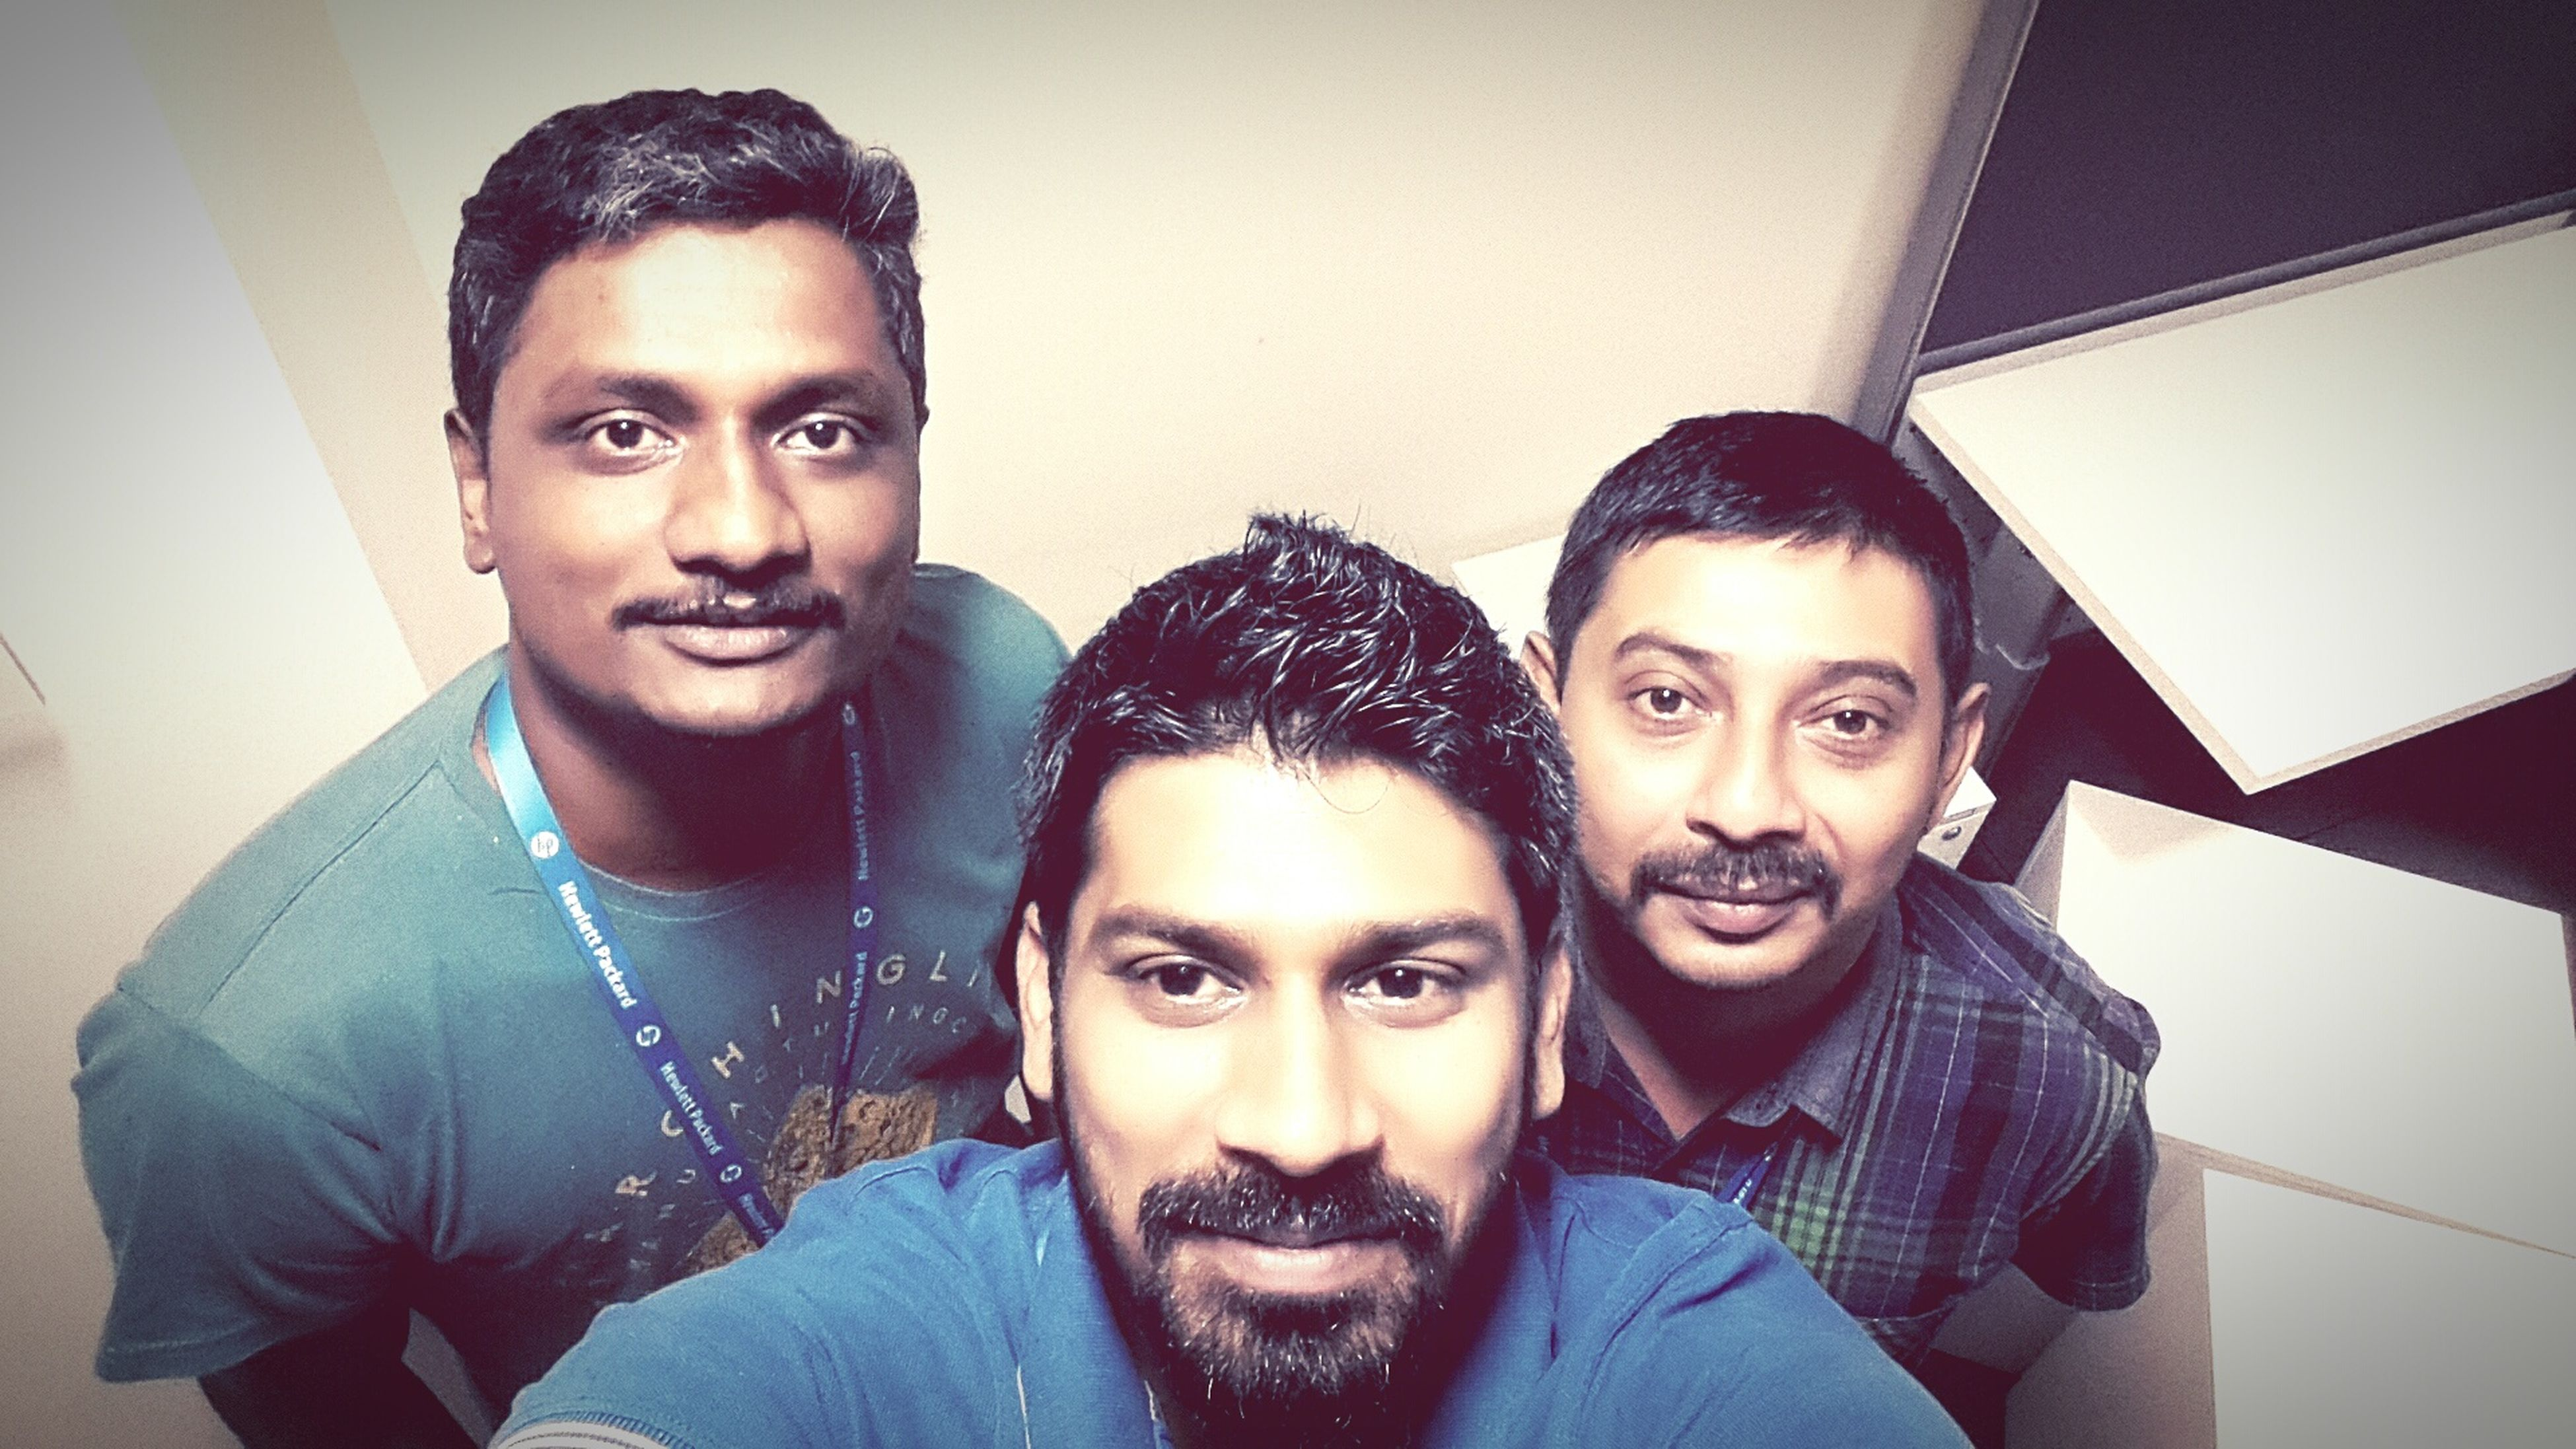 looking at camera, portrait, person, lifestyles, young adult, smiling, front view, togetherness, happiness, indoors, leisure activity, young men, casual clothing, bonding, mid adult, headshot